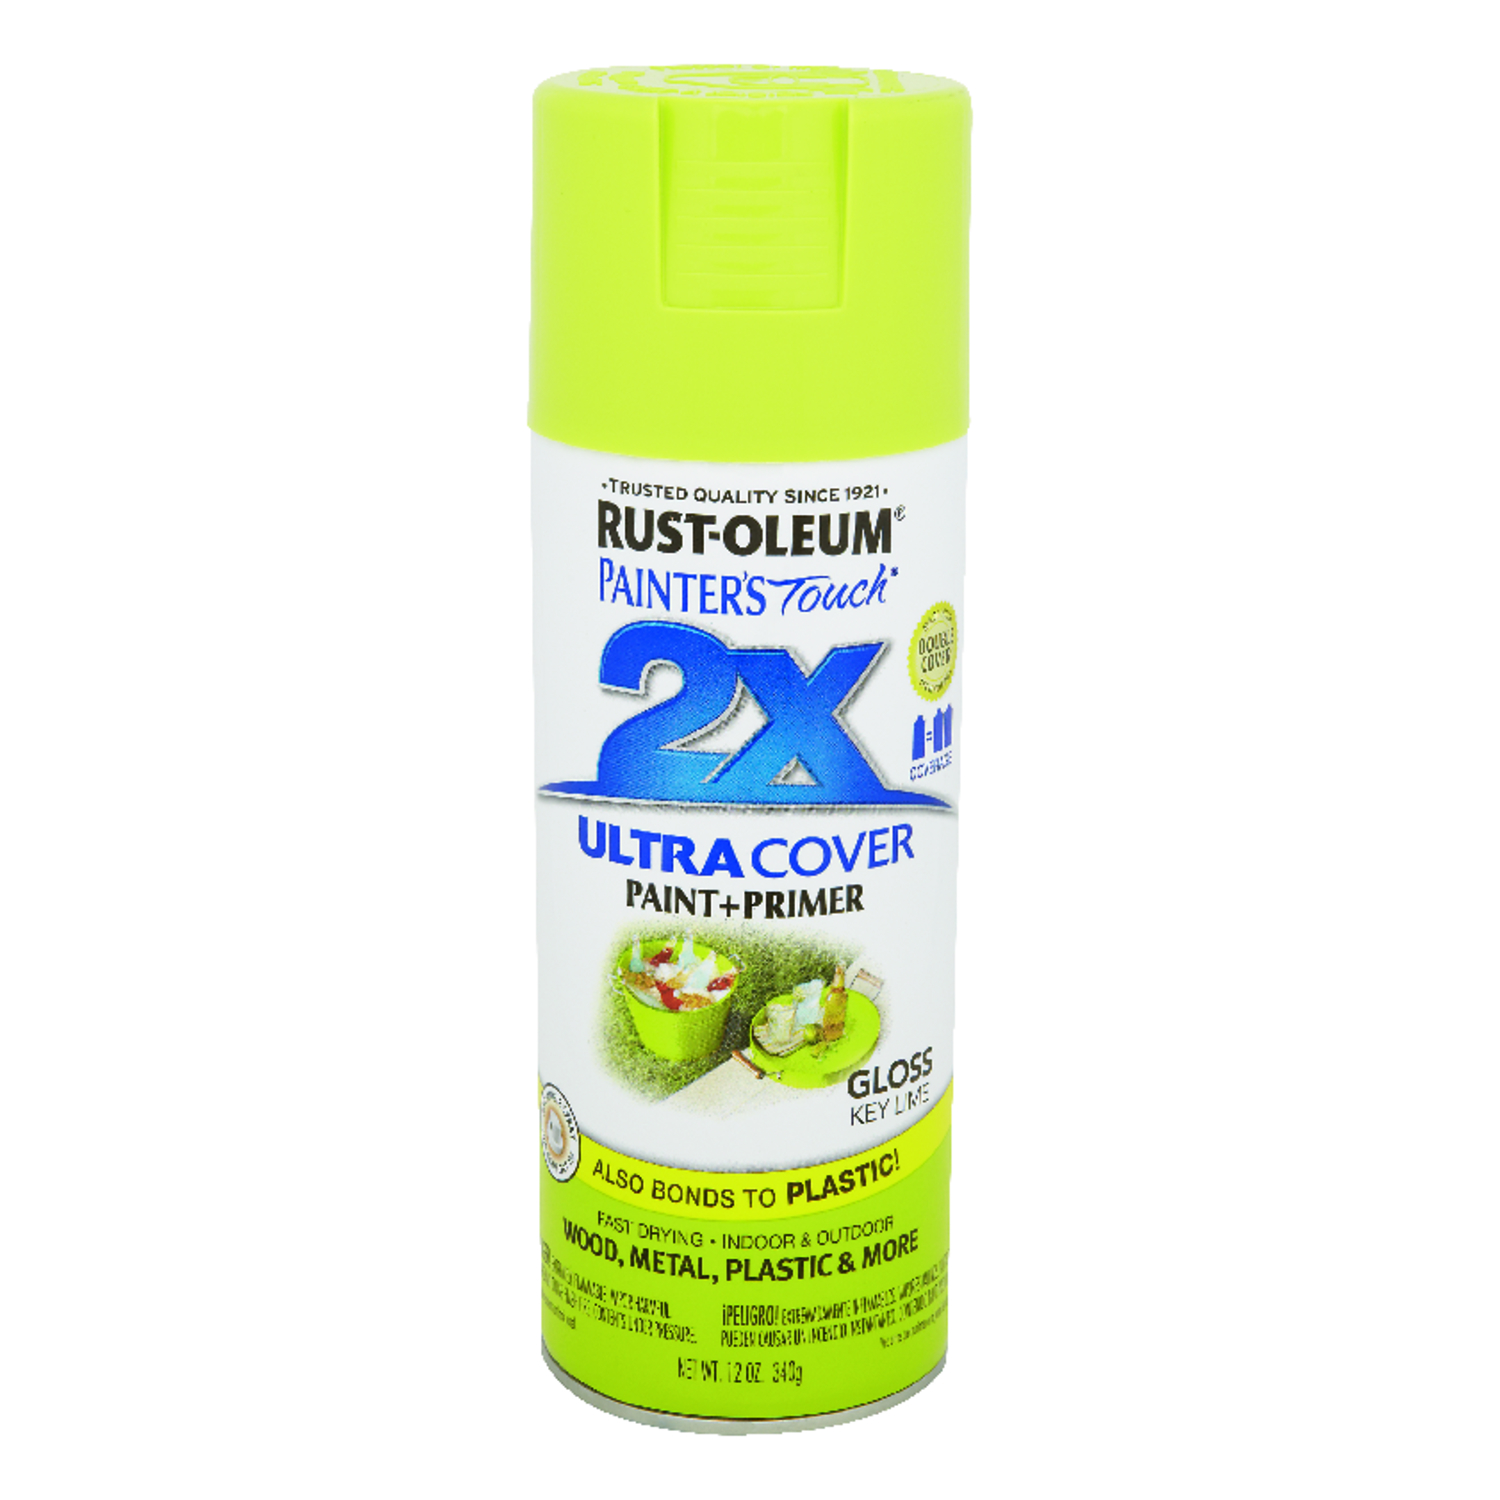 Rust-Oleum  Painter's Touch Ultra Cover  Gloss  Spray Paint  Key Lime  12 oz.